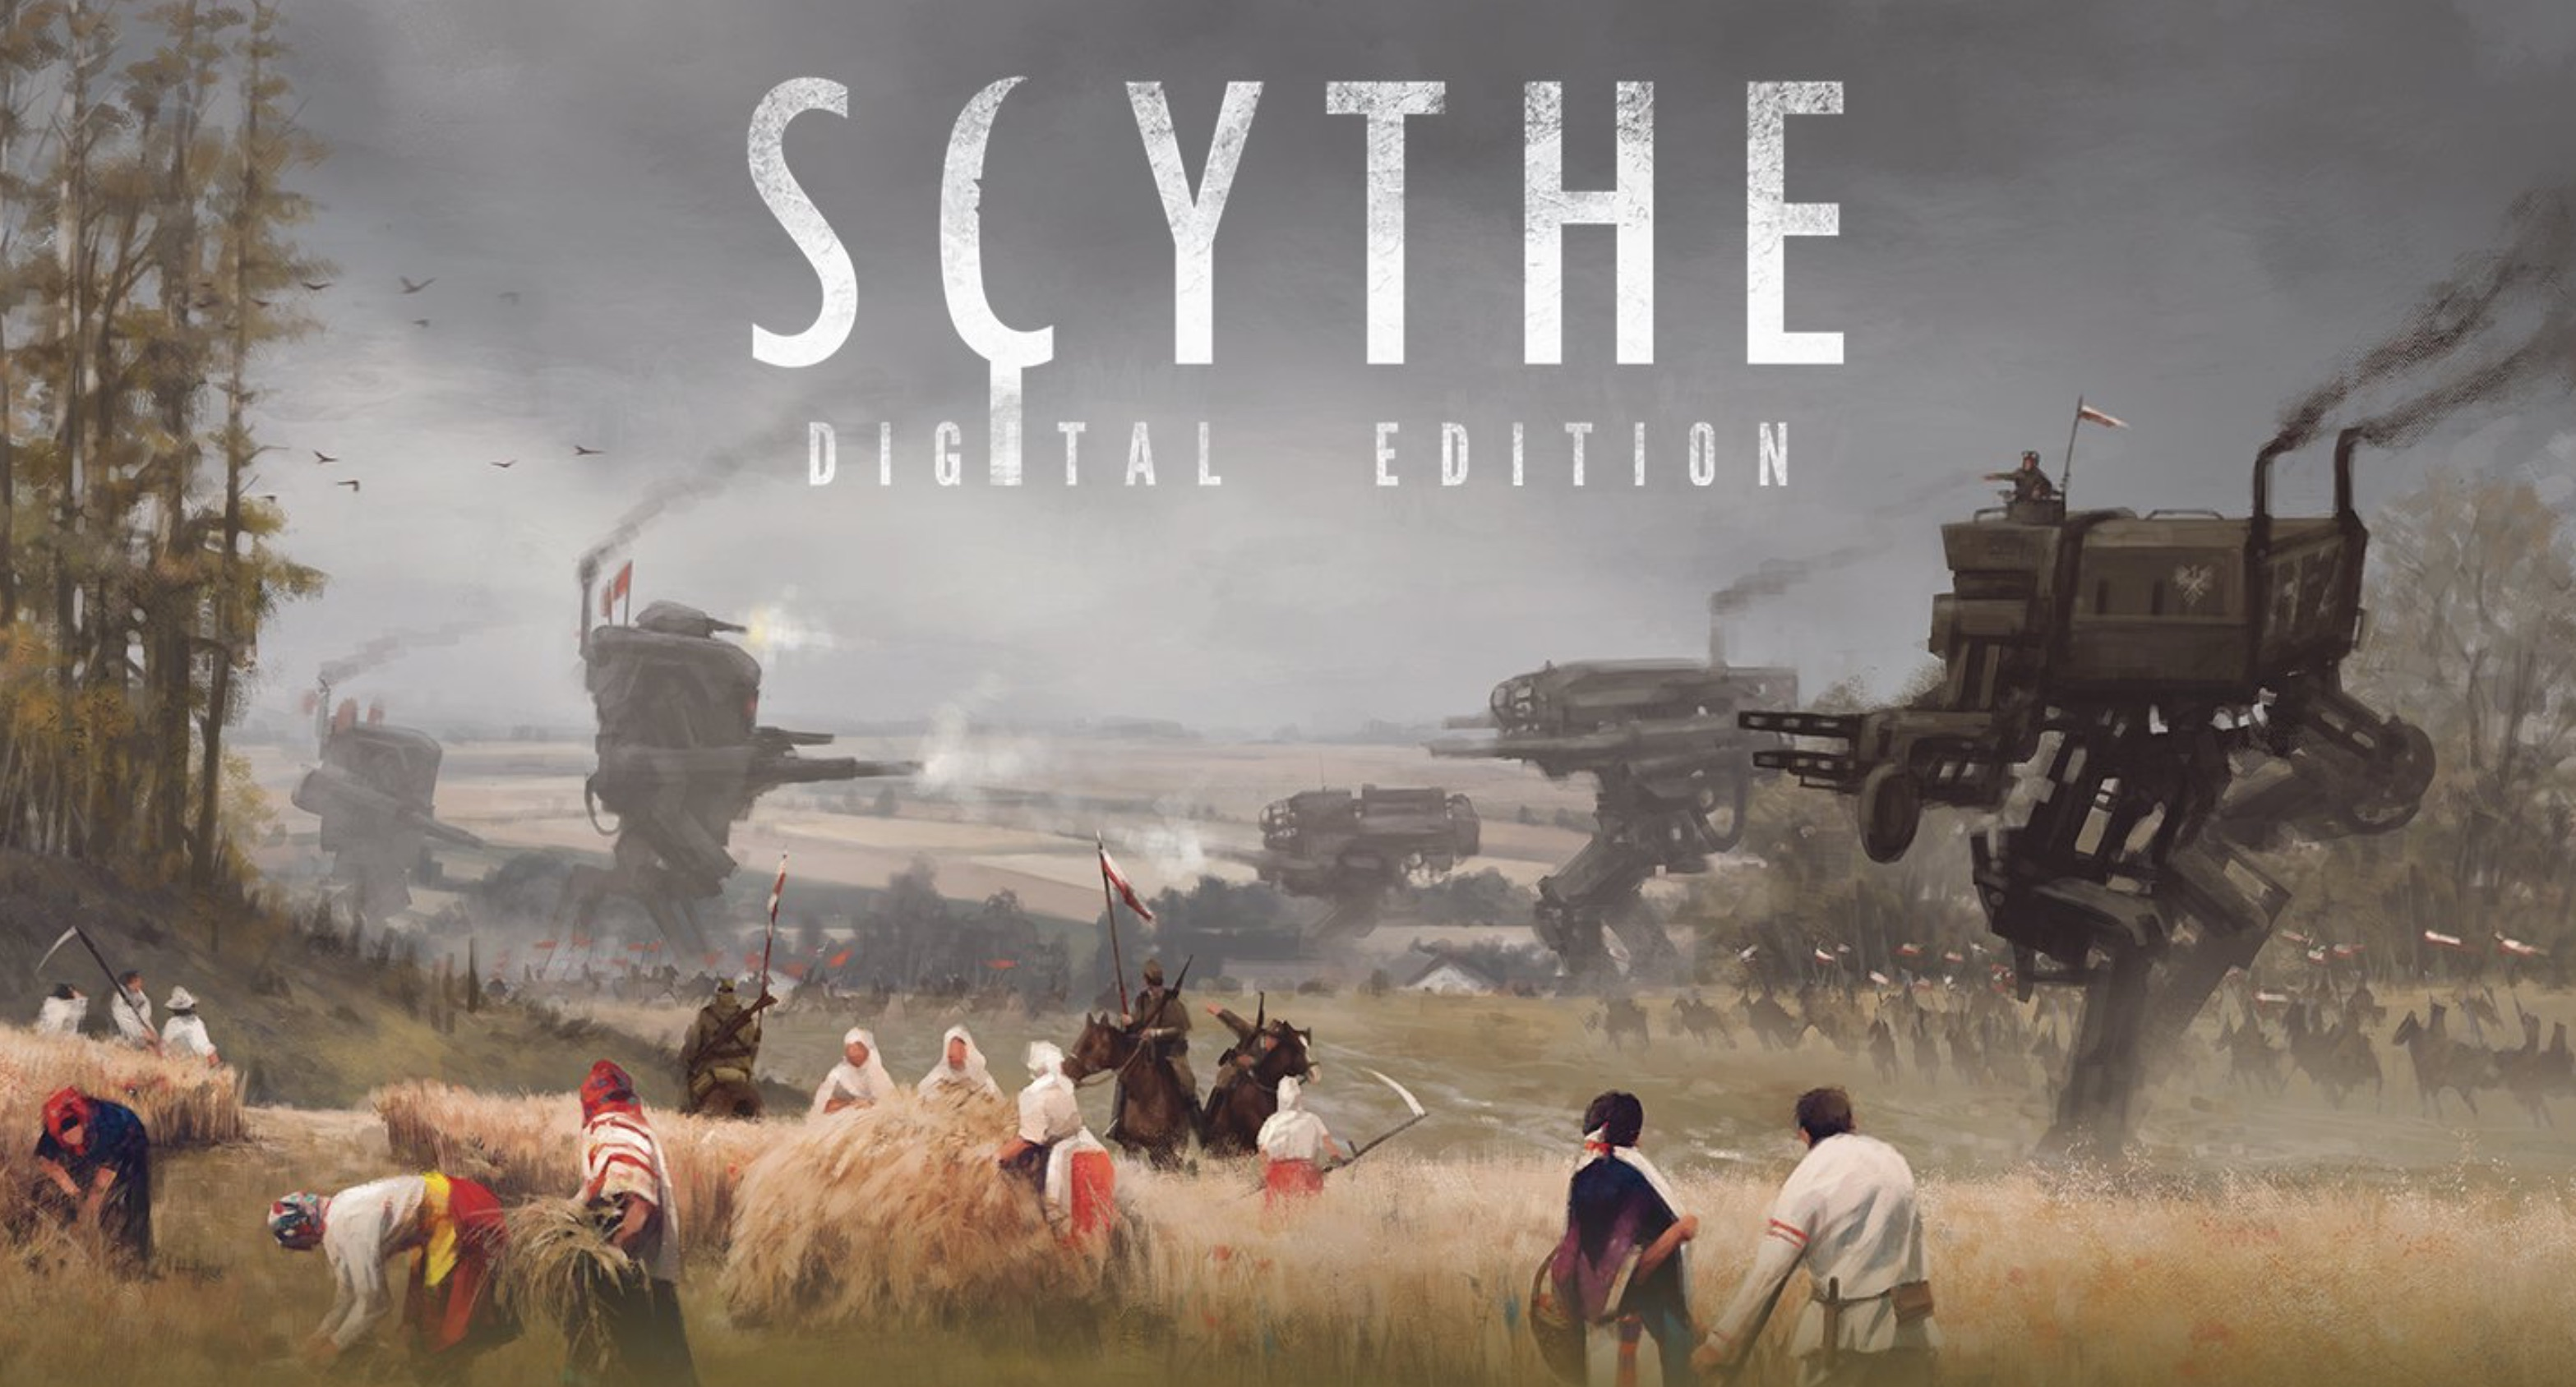 Review: Mega-hit boardgame Scythe goes digital on Steam